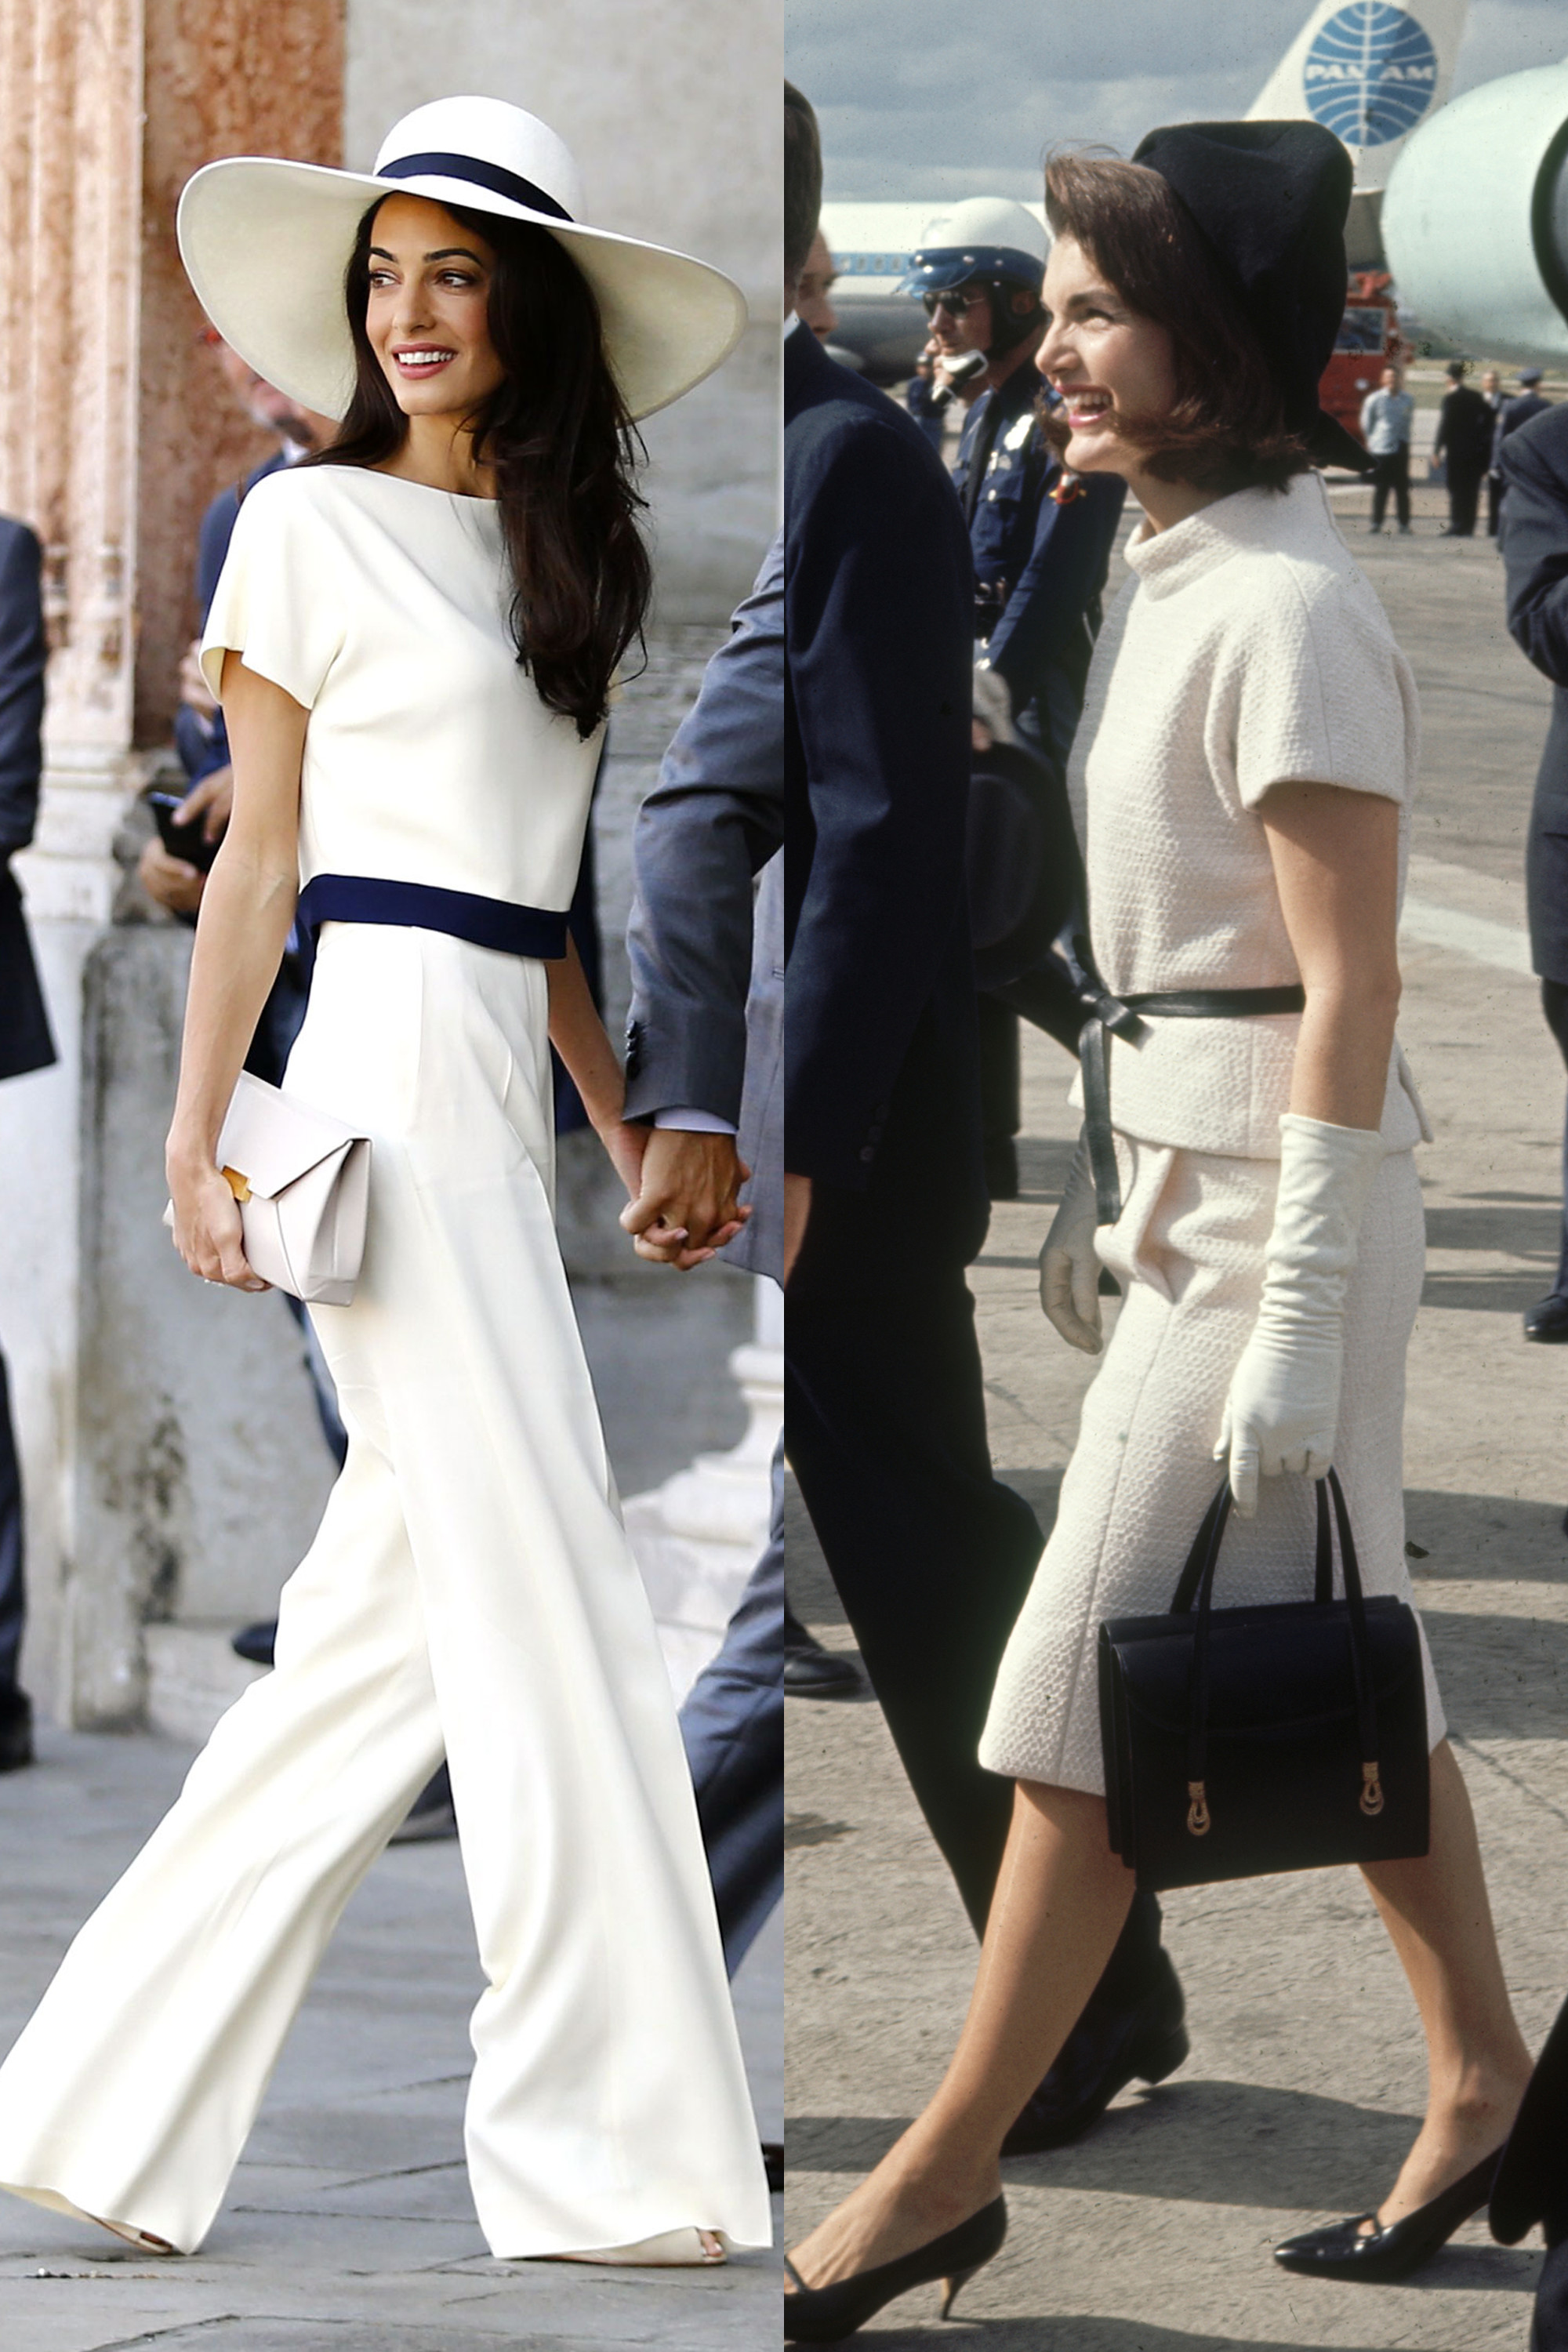 Jackie Kennedy Fashion: Amal Clooney And Jackie Kennedy Style Fashion Similarities